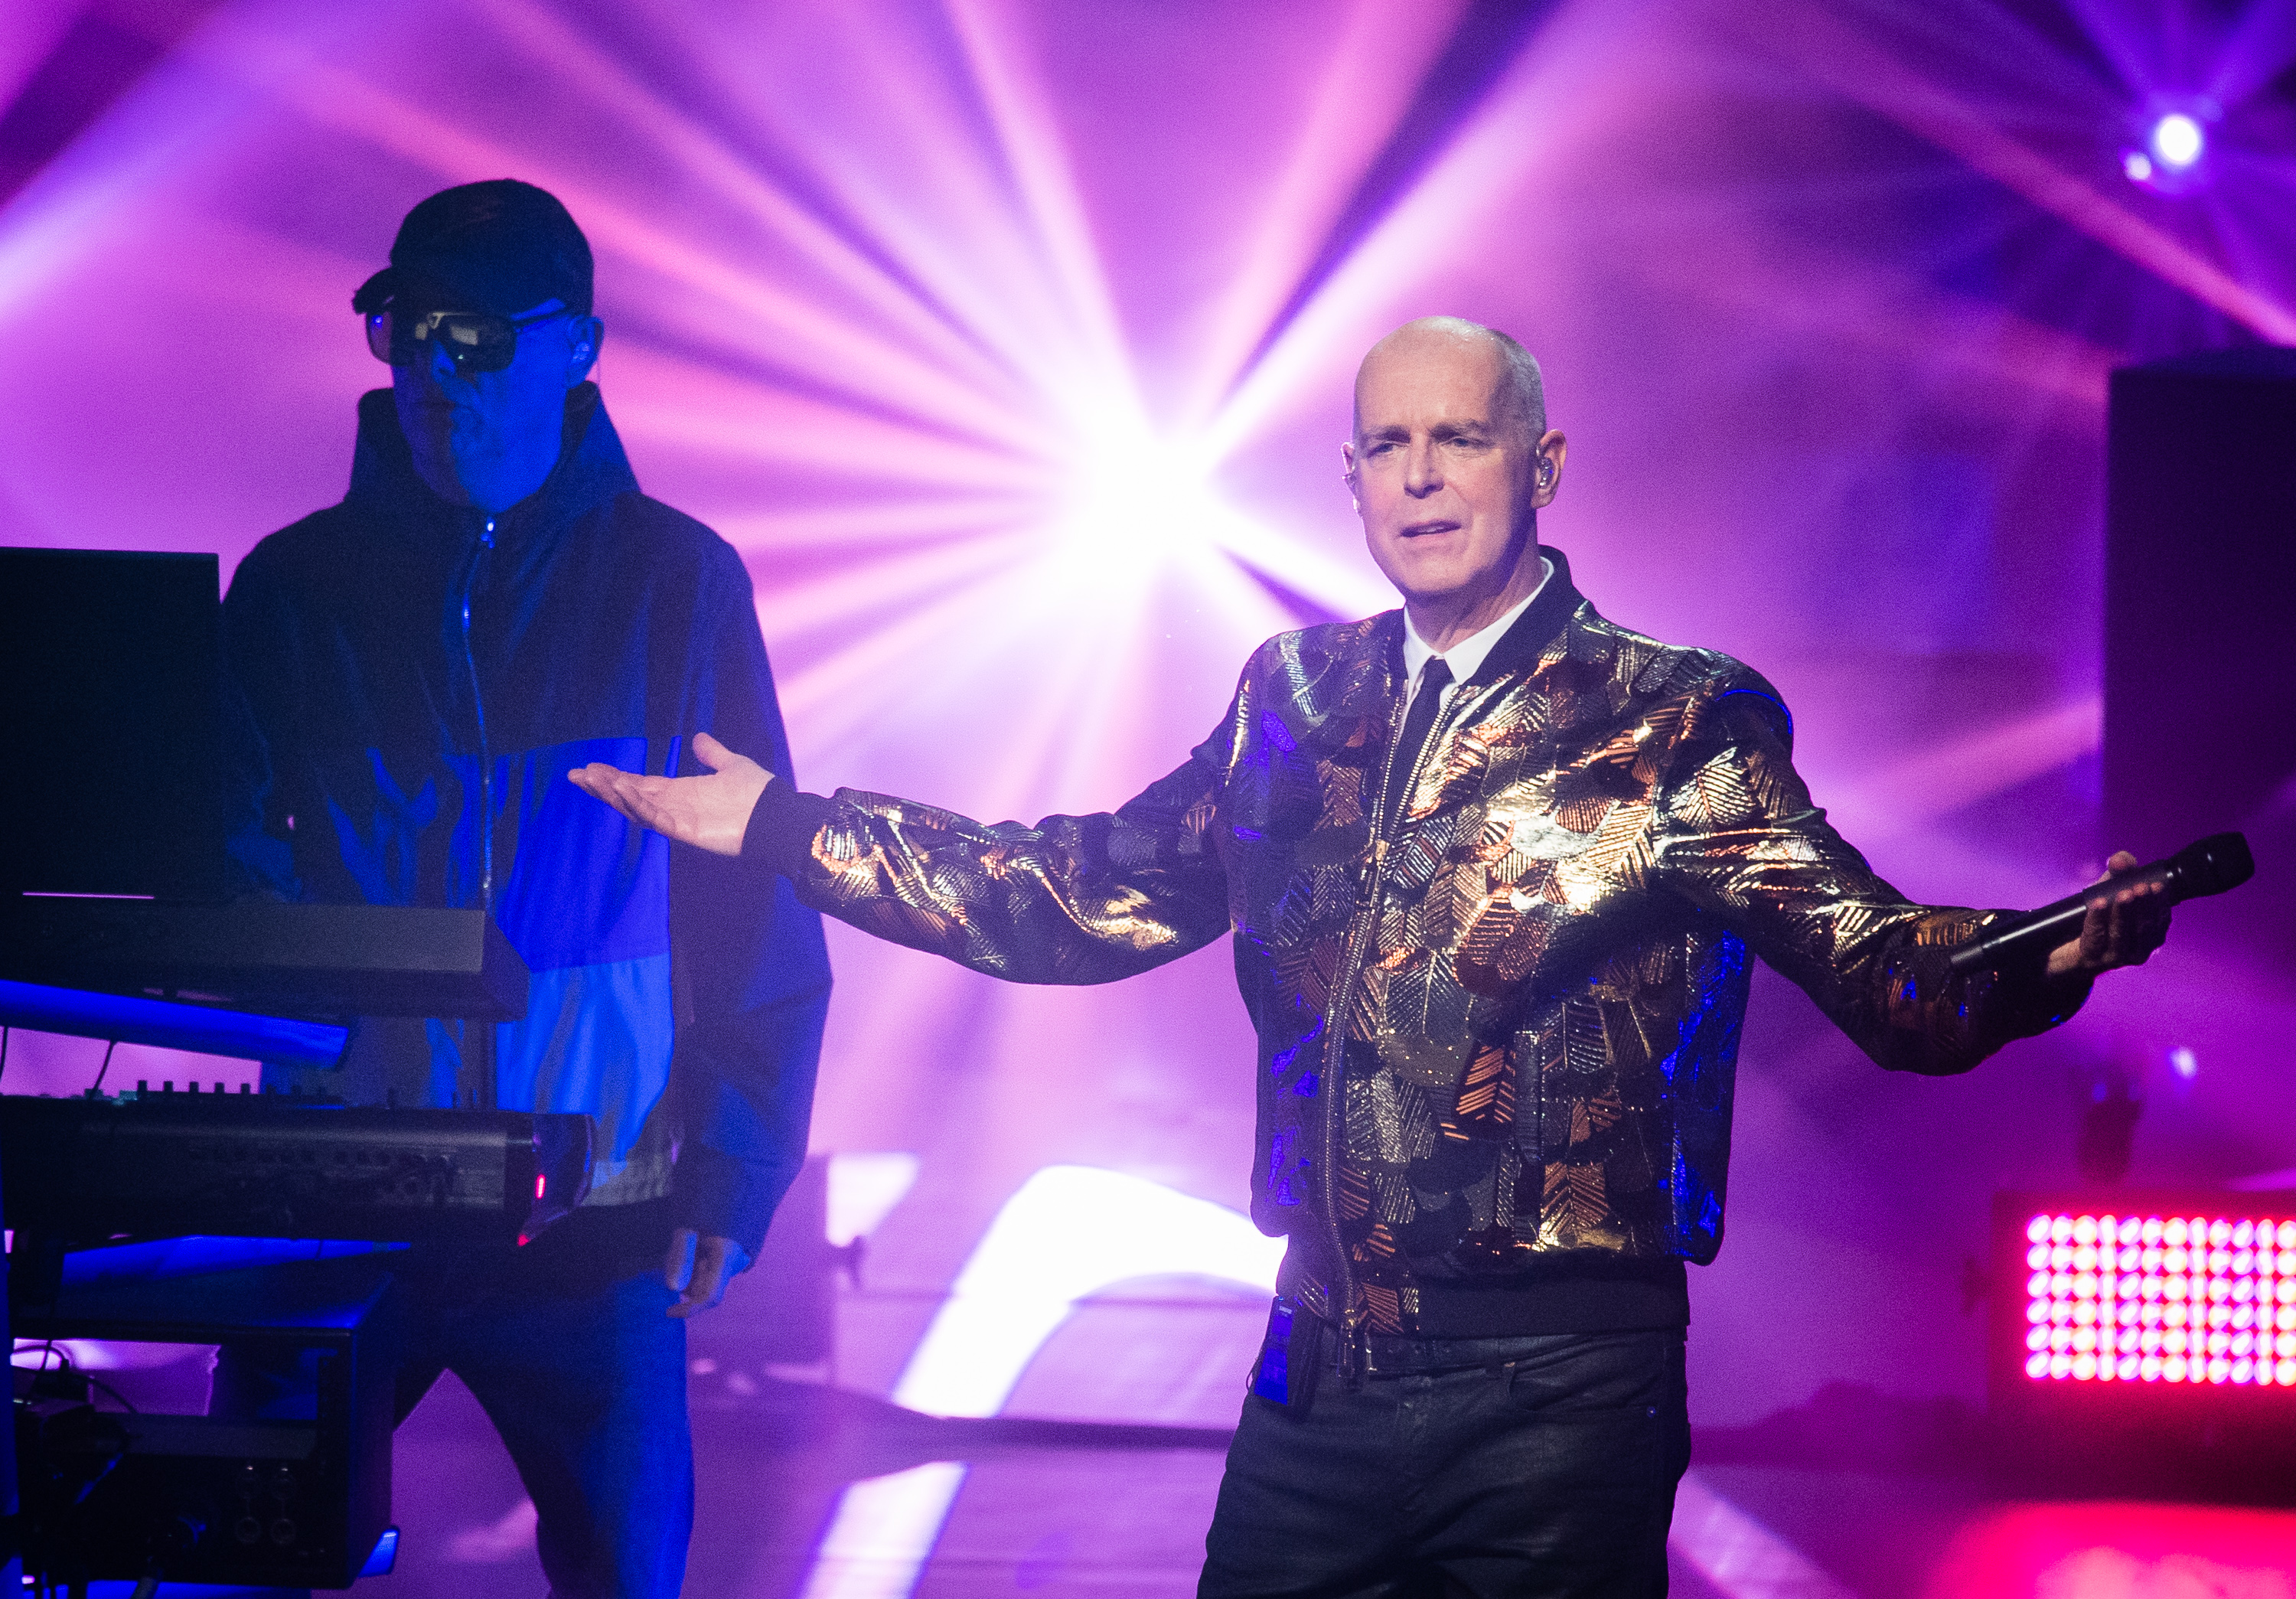 Zerchoo Music - Pet Shop Boys announce UK arena tour and